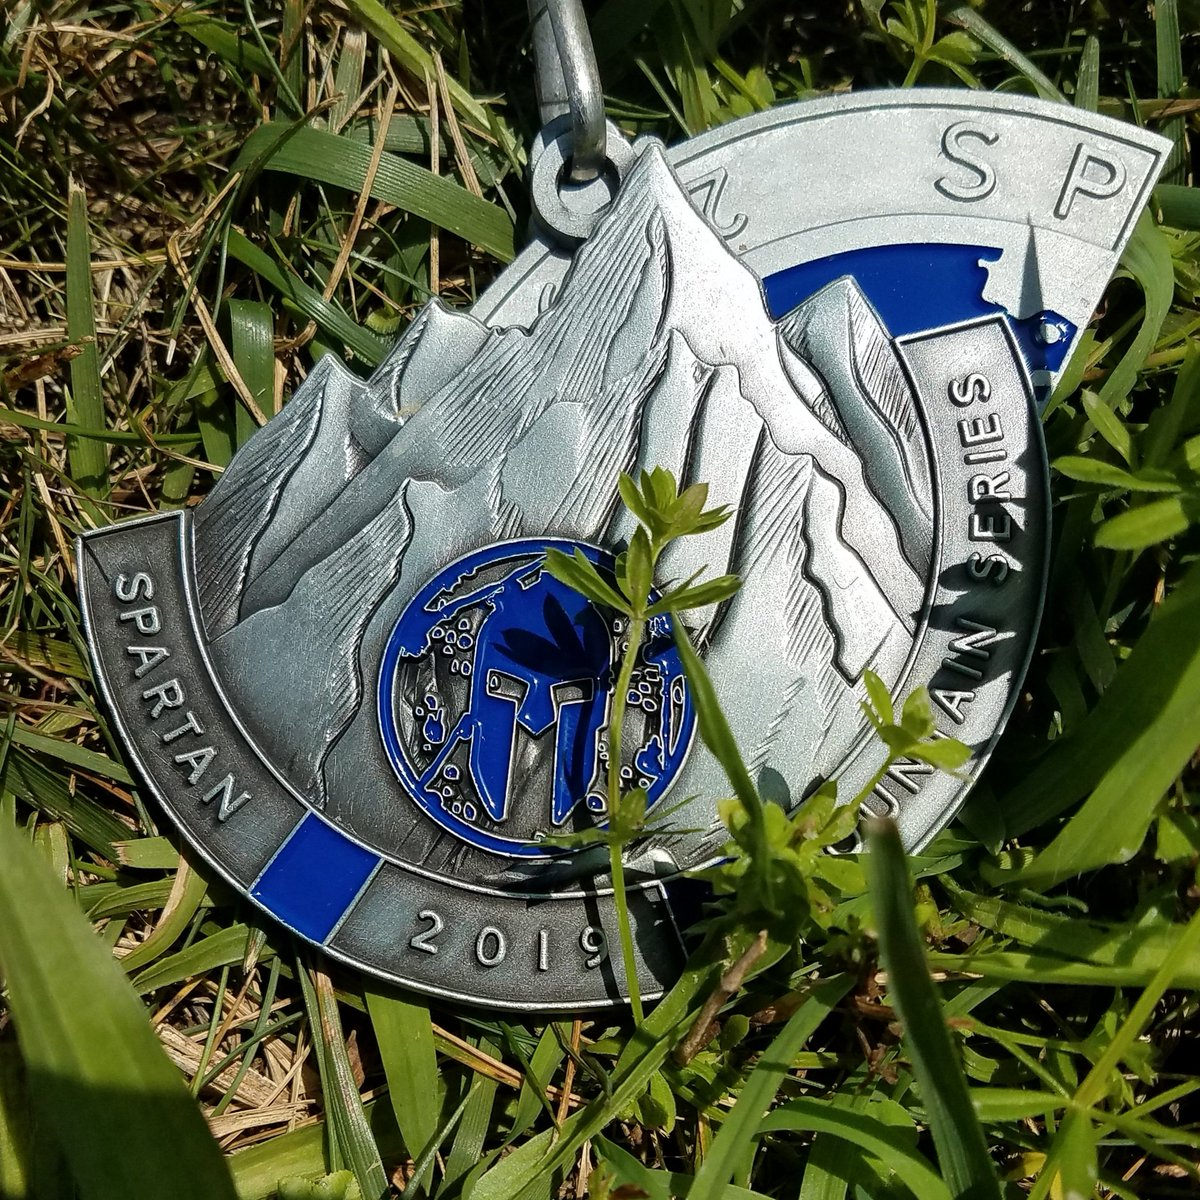 After 29 obstacles, 95 burpees, 8 miles and 3 1/2 hours this medal was earned and not given #spartanrace #spartansuper #spartanultra #trifectatribe #spartantraining #spartanarmy2019 #spartanup #spartanstrong #OCR #obstaclecourse  #bellsnotburpees #beastmode #aroo #spartan40